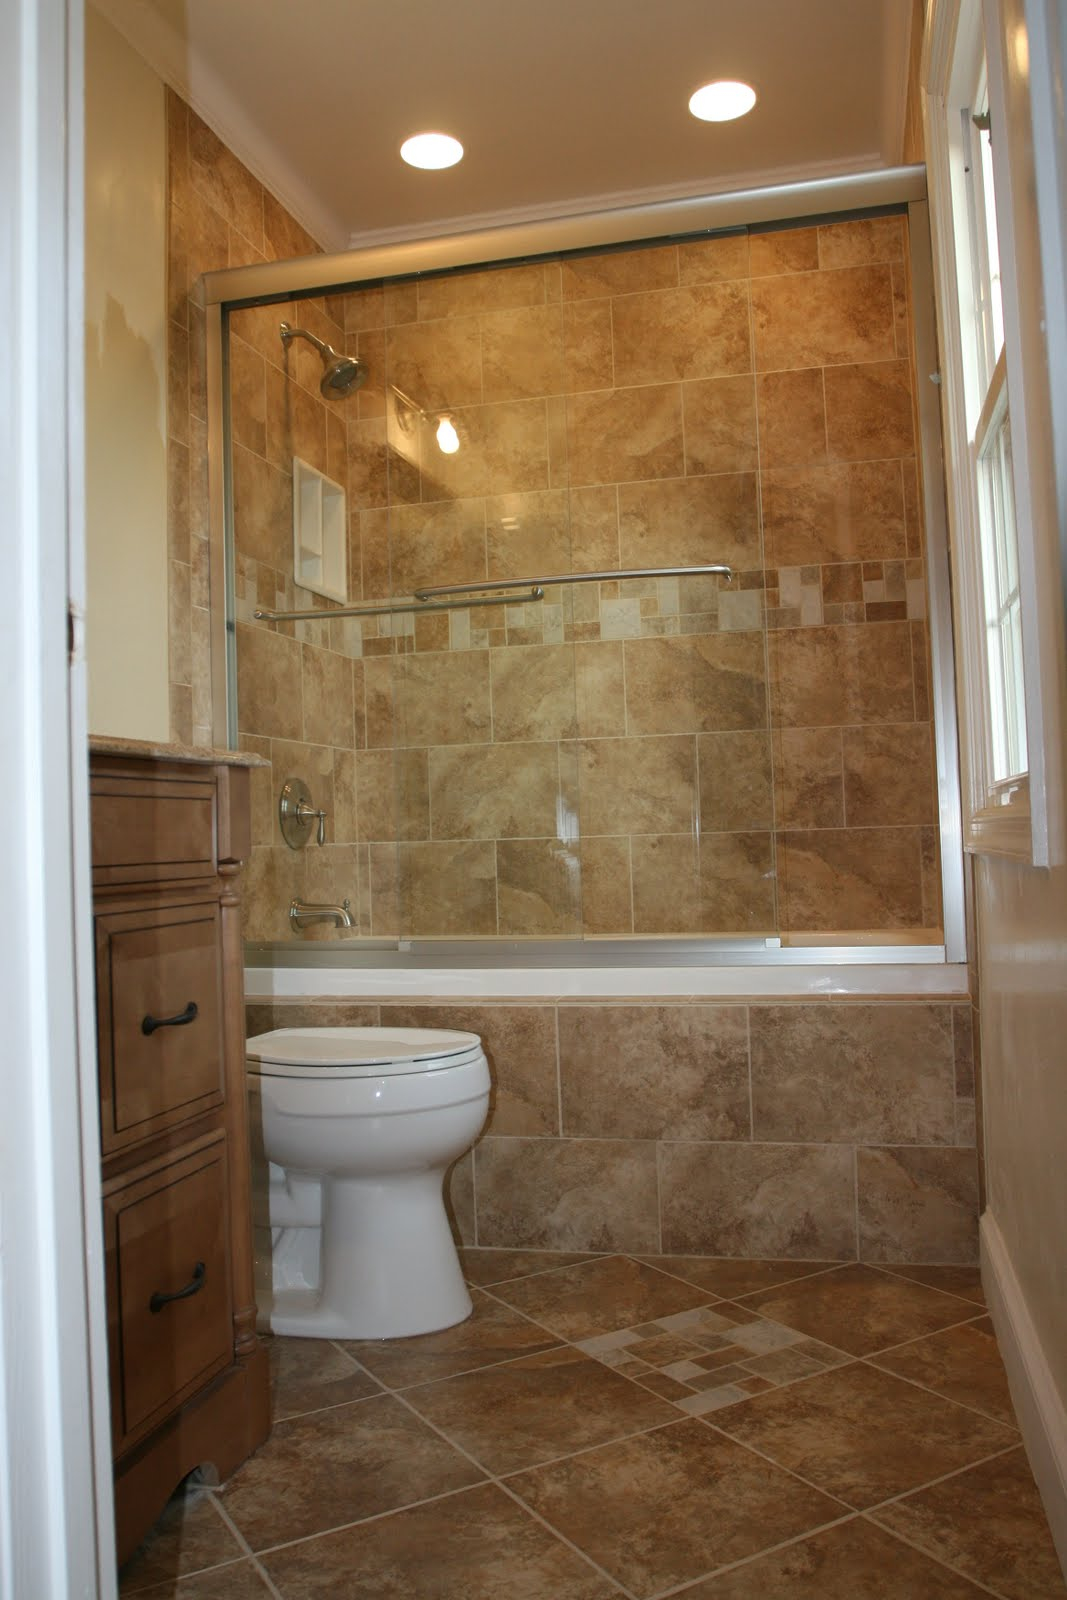 Bathroom remodeling design ideas tile shower niches for Bathroom remodel ideas